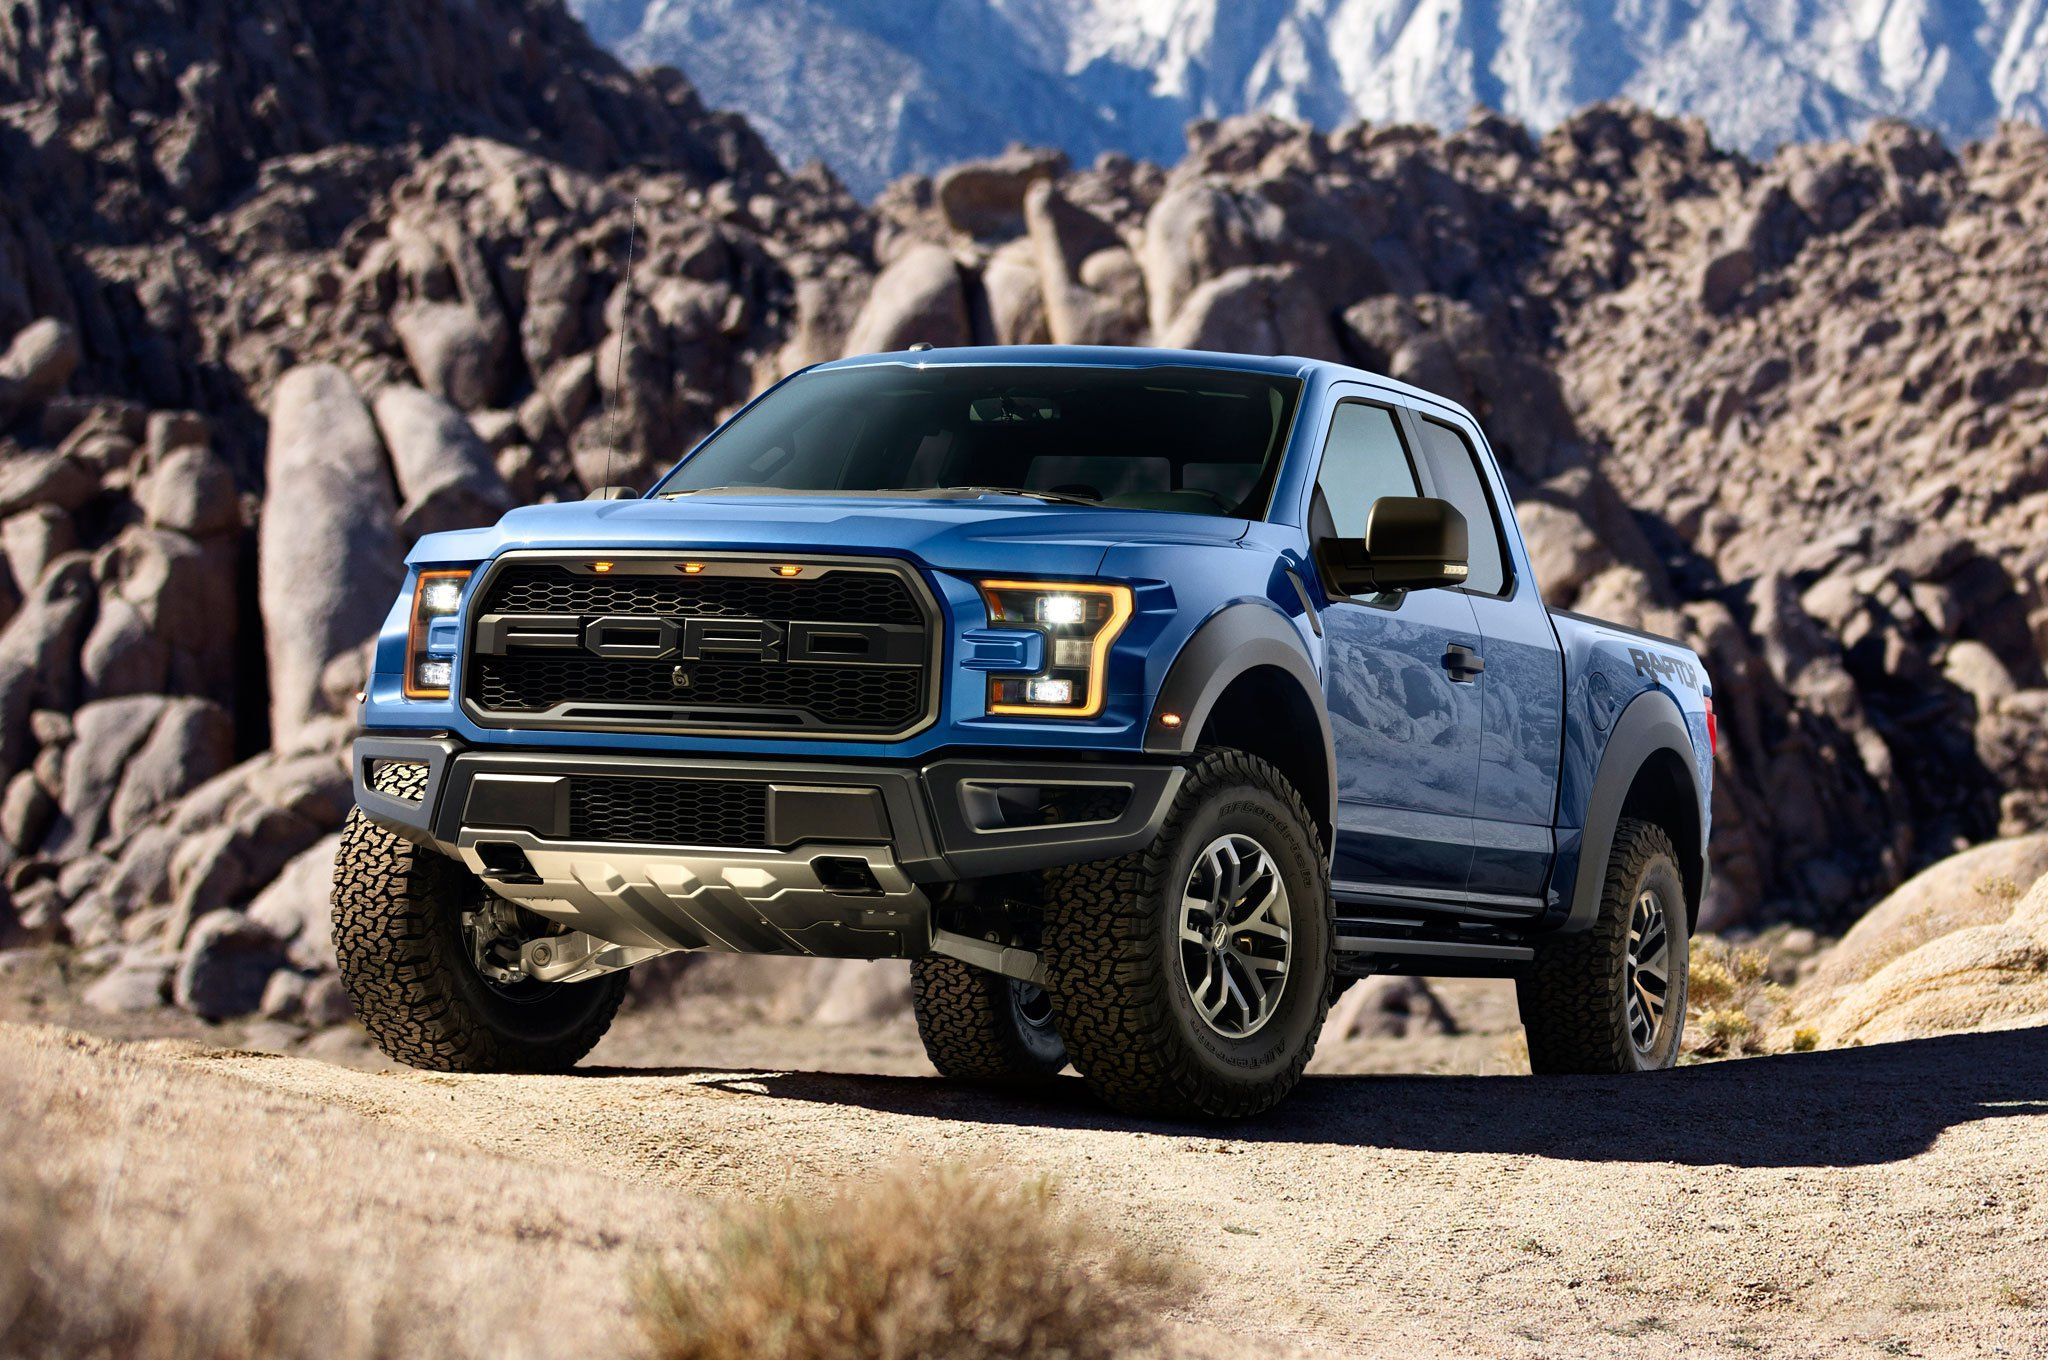 2017 Ford F 150 Raptor Release Date Interior Price Ford Raptor Ford F150 Raptor Ford Raptor Price